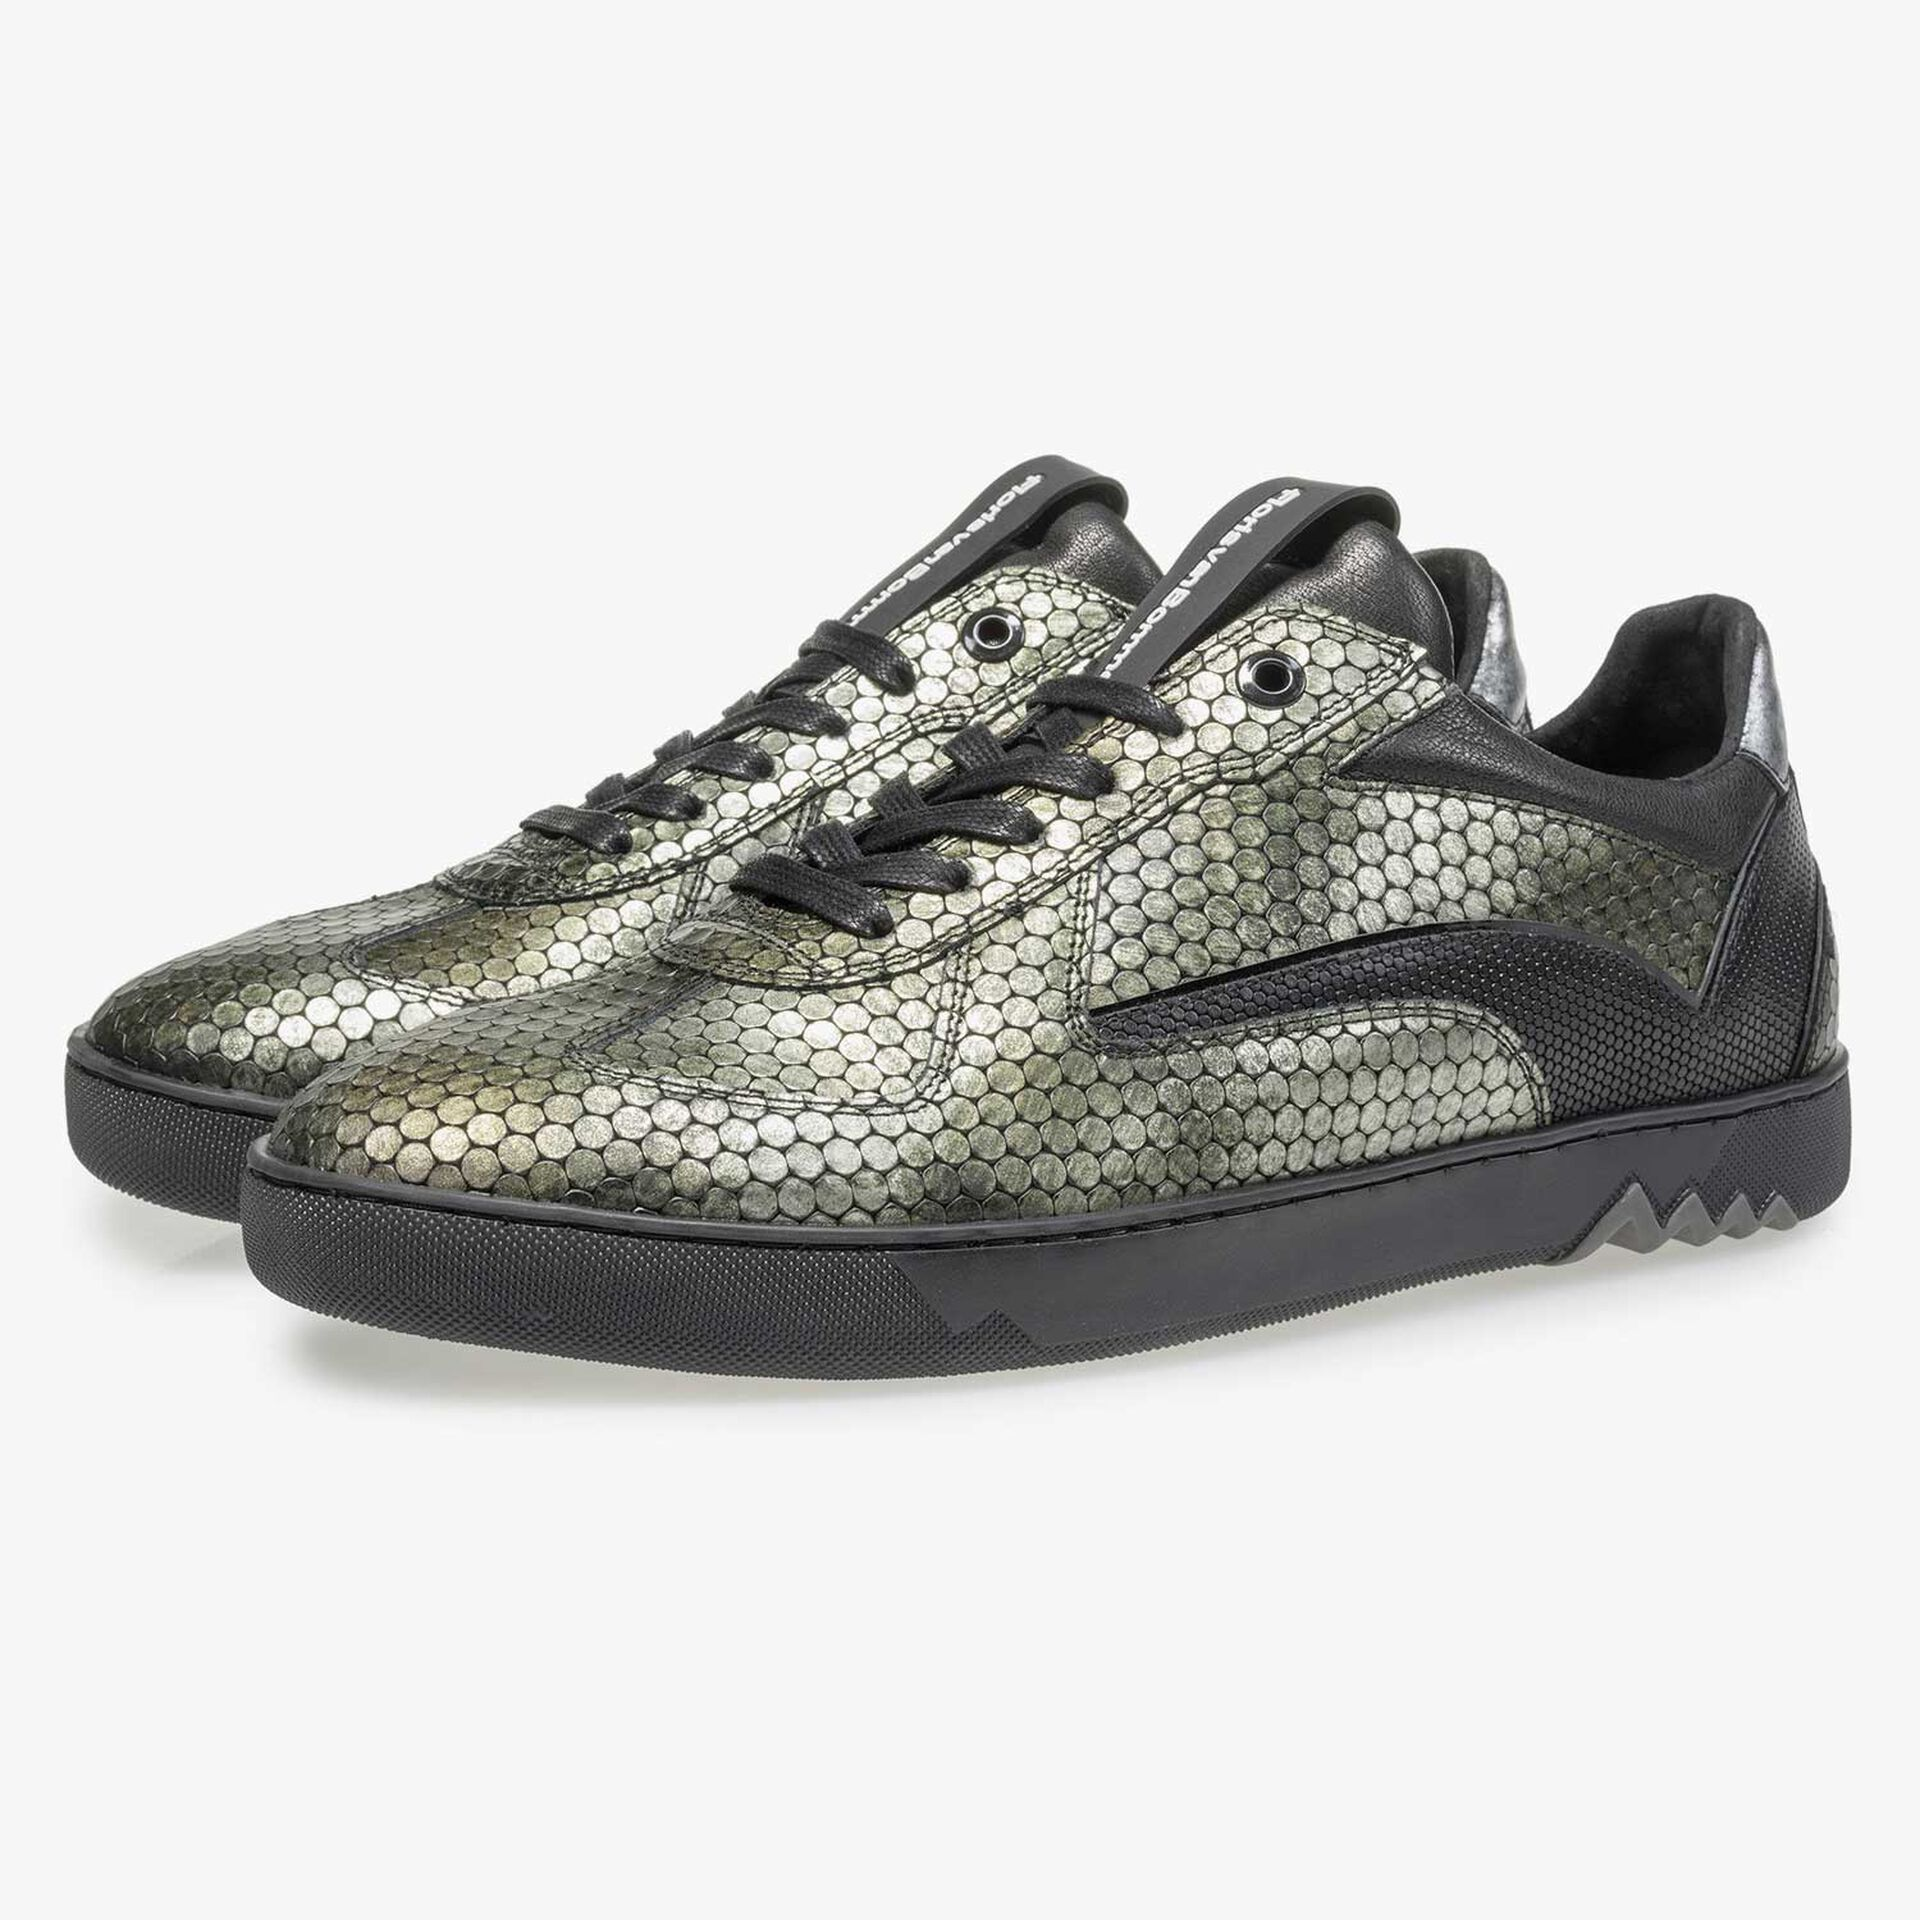 Green metallic print leather sneaker